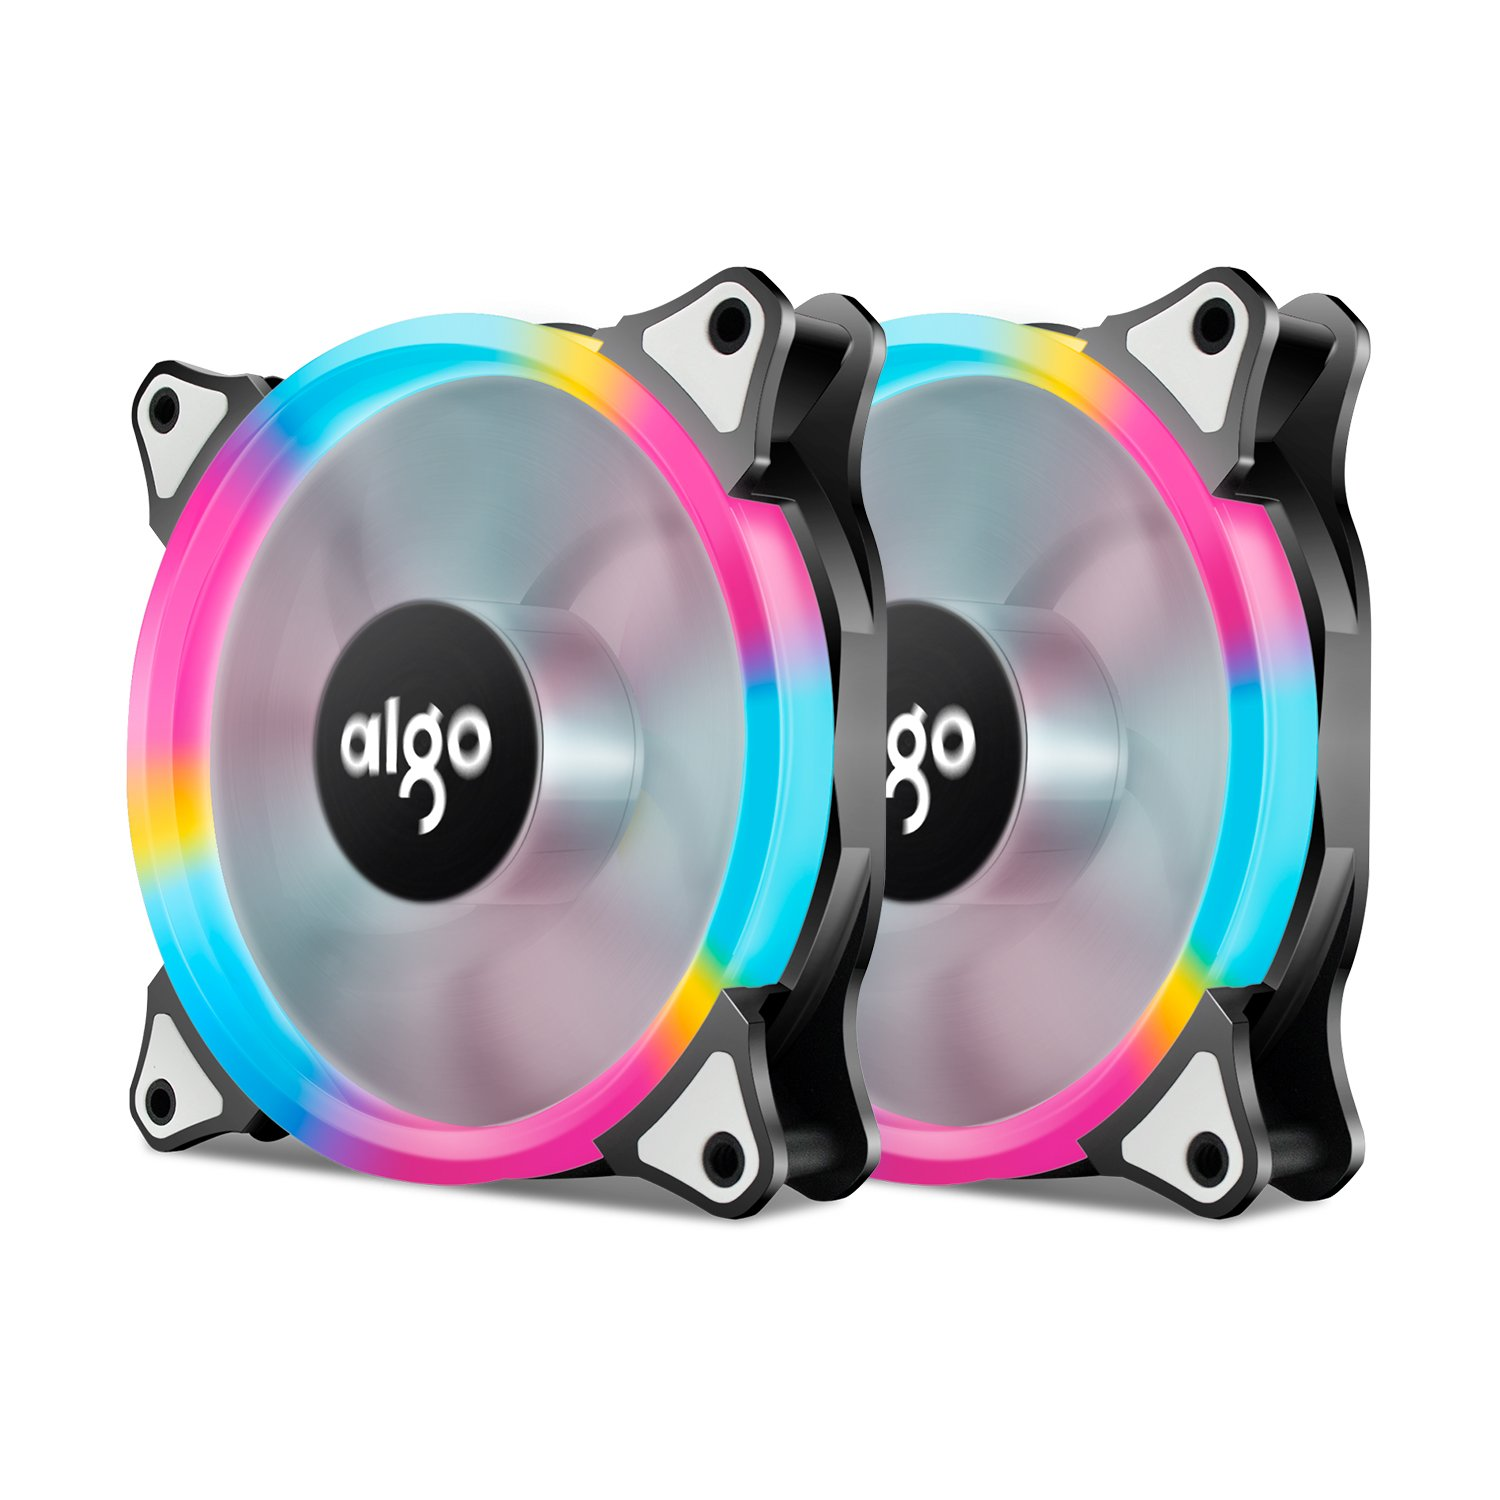 Aigo, Pack of 2 Rianbow120mm LED Ring FanCase Fan Silent Sleeve Bearing PC Cooling Neon Quite Clear Case Fan Cooling Cooler Mod 4 Pin/3 Pin for Computer Cases